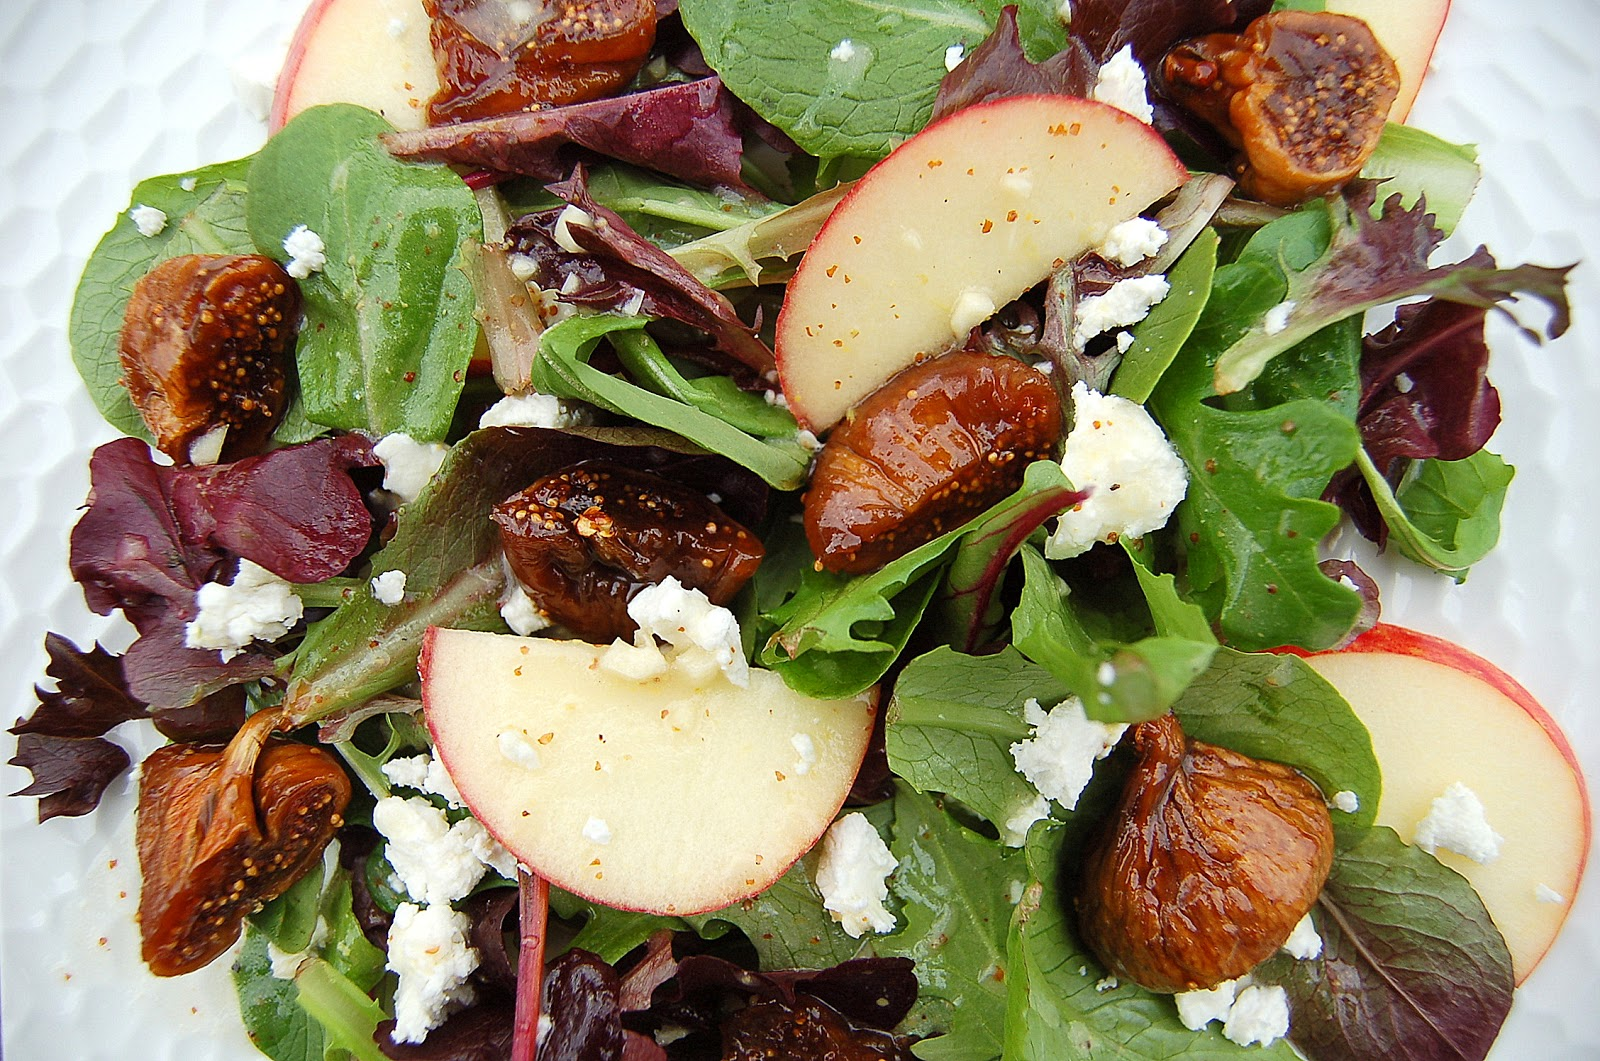 Sauteed Fig & Goat Cheese Salad for 2